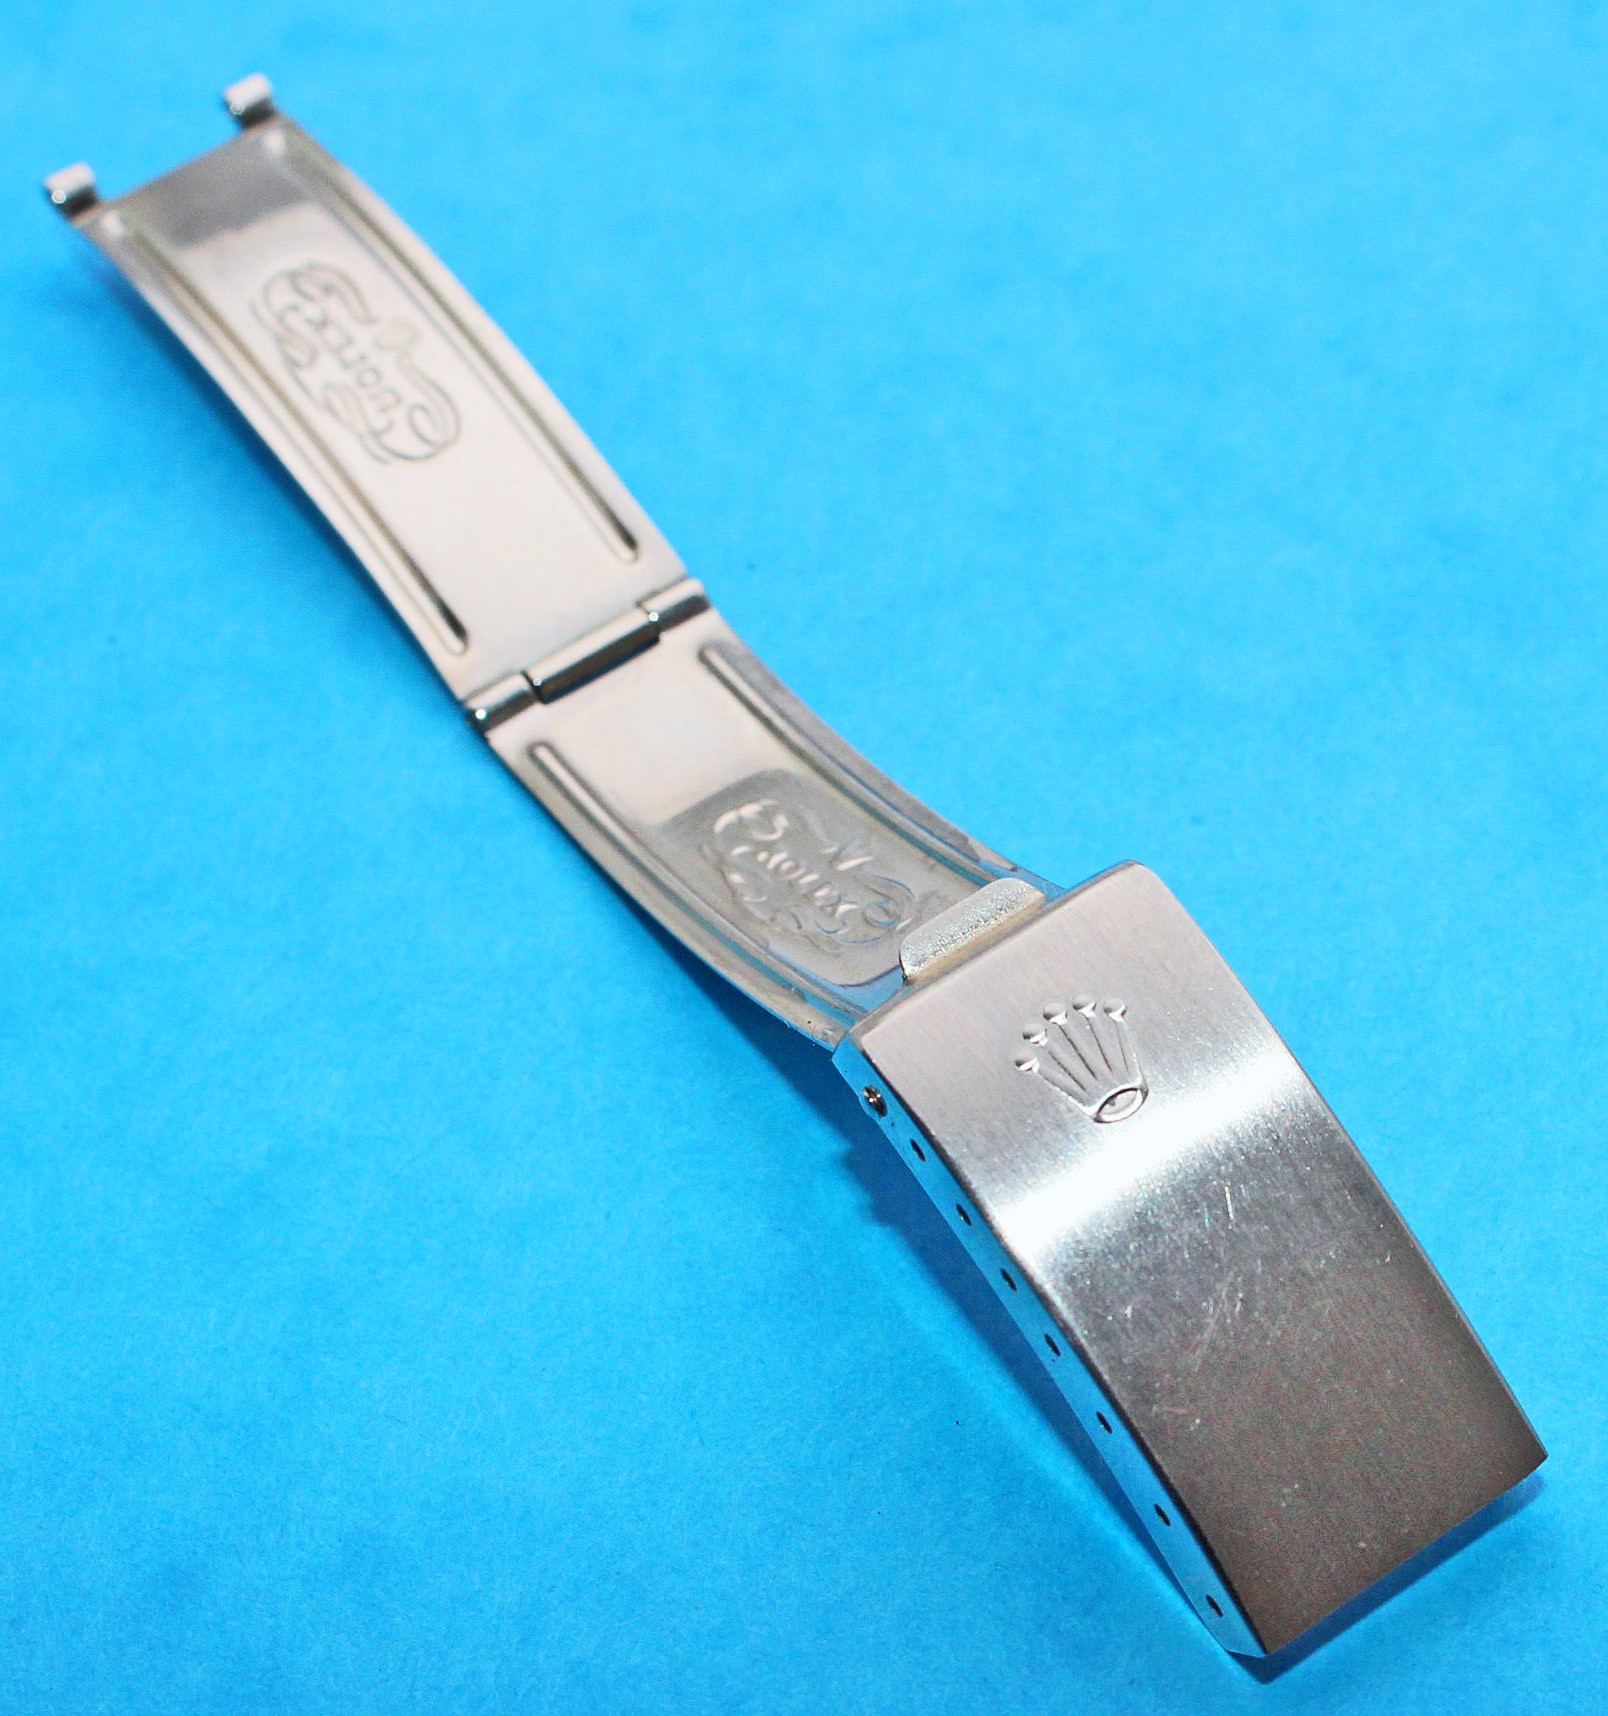 ROLEX 2003 VINTAGE WATCH FOLDED CLASP DEPLOYANT Ref 78350 19mm BRACELETS OYSTER CODE AD1